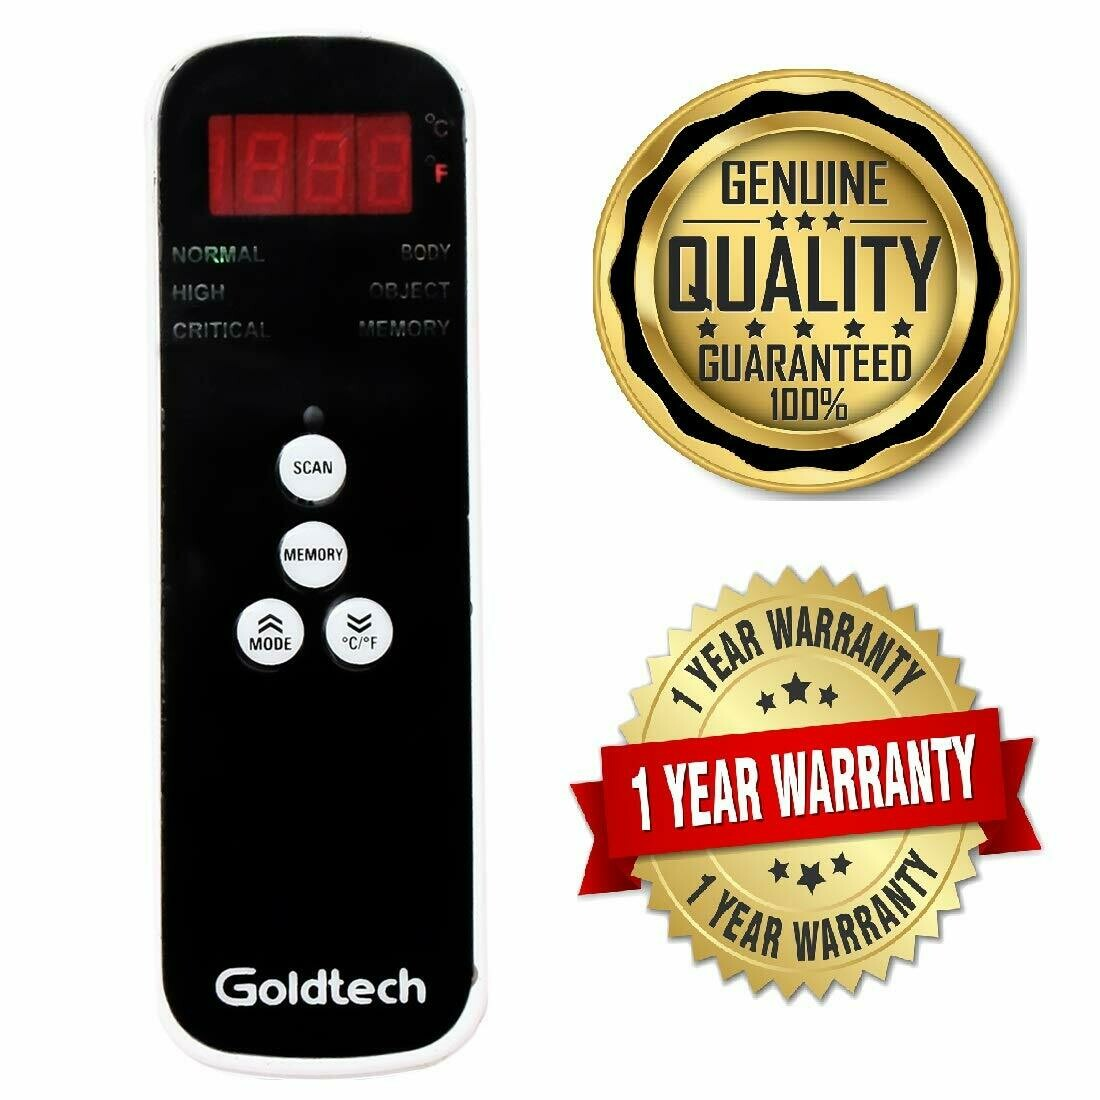 Made in India Infrared Thermometer Goldtech